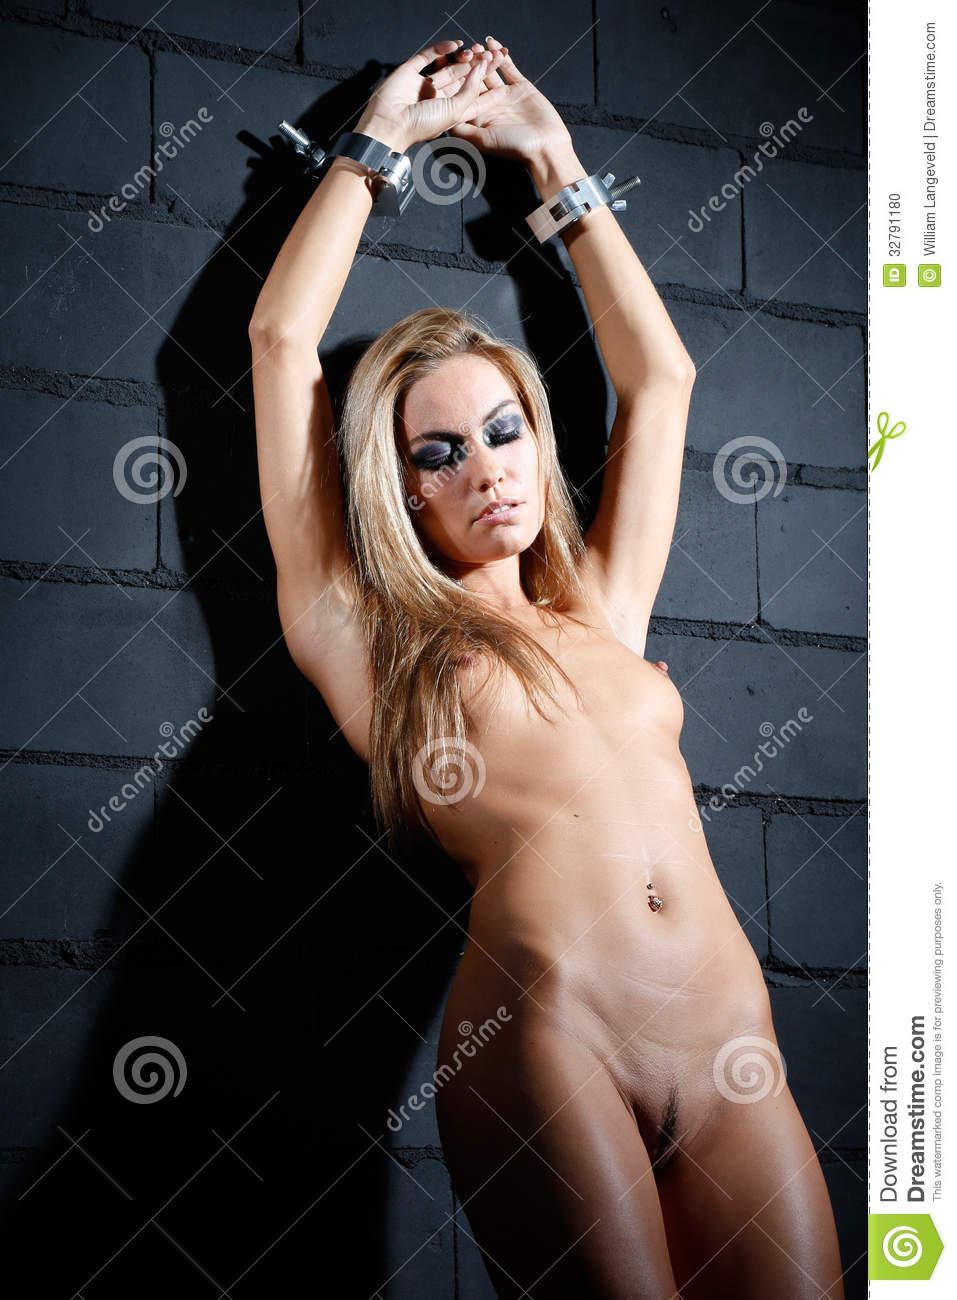 Bondage Style Naked Woman Stock Photo Image Of Prison -6874